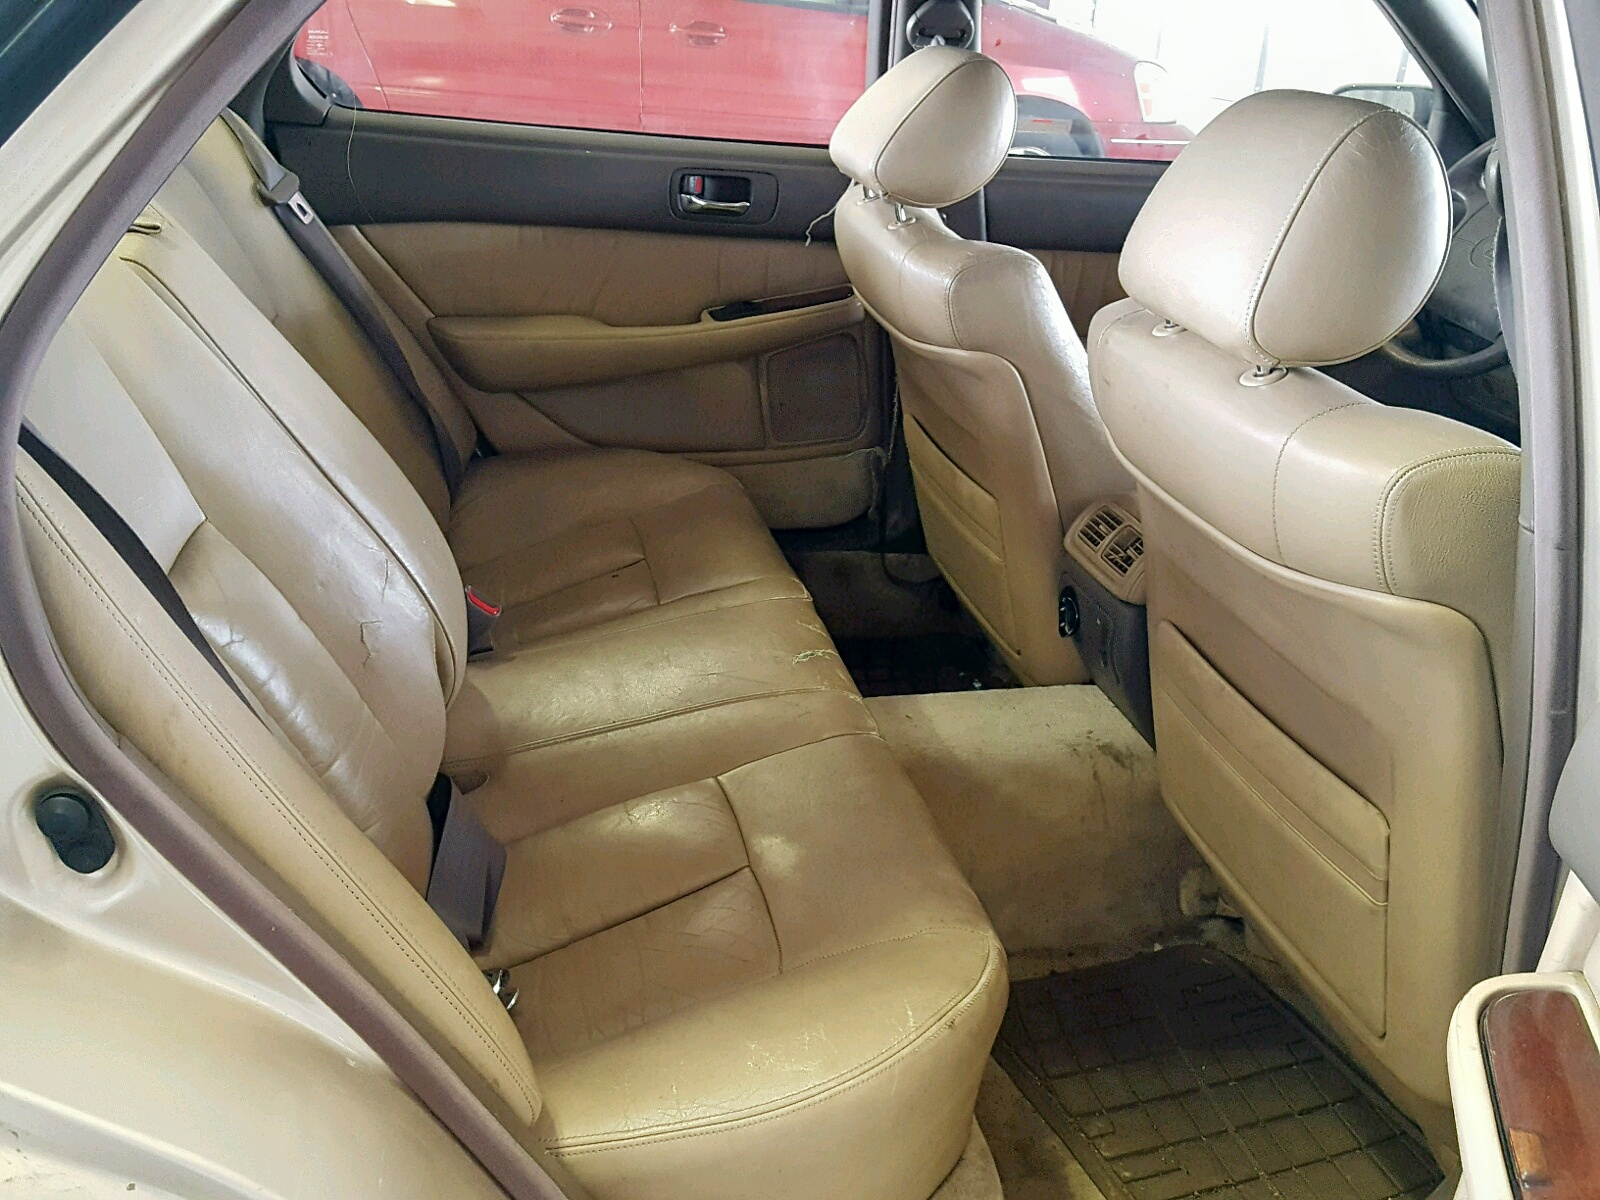 Remarkable 1991 Lexus Ls 400 4 0L 8 In Co Denver Jt8Uf11E7M0093166 Pabps2019 Chair Design Images Pabps2019Com